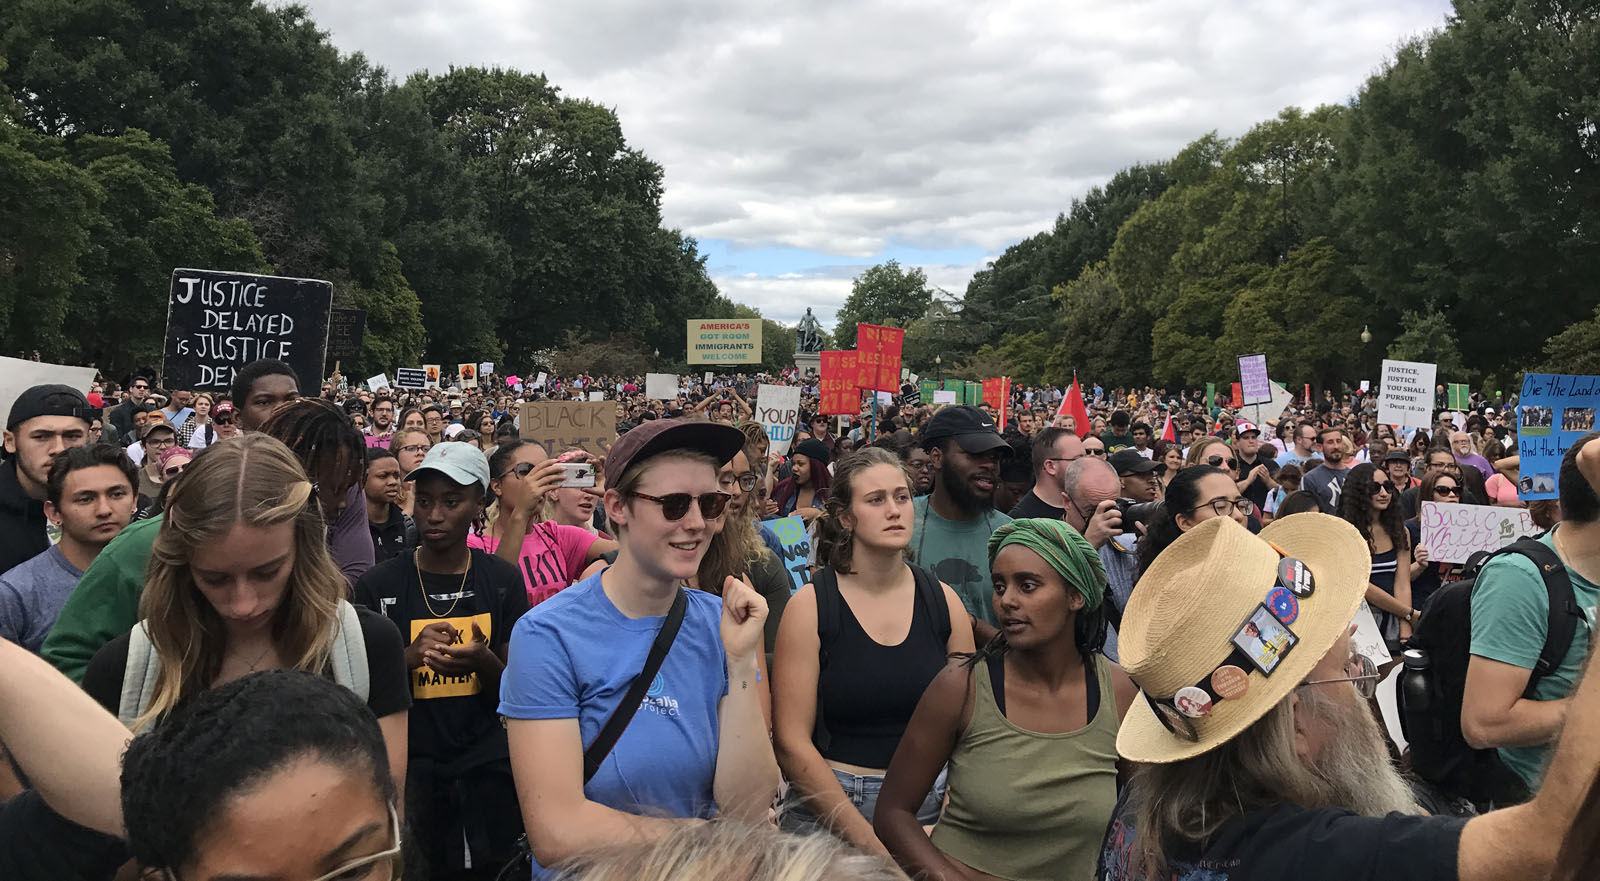 """""""This is about coming together in love and peace to ensure that people around the world know that Americans love one another,"""" said Maurice Cook, co-founder of the March for Racial Justice. (WTOP/Dick Uliano)"""